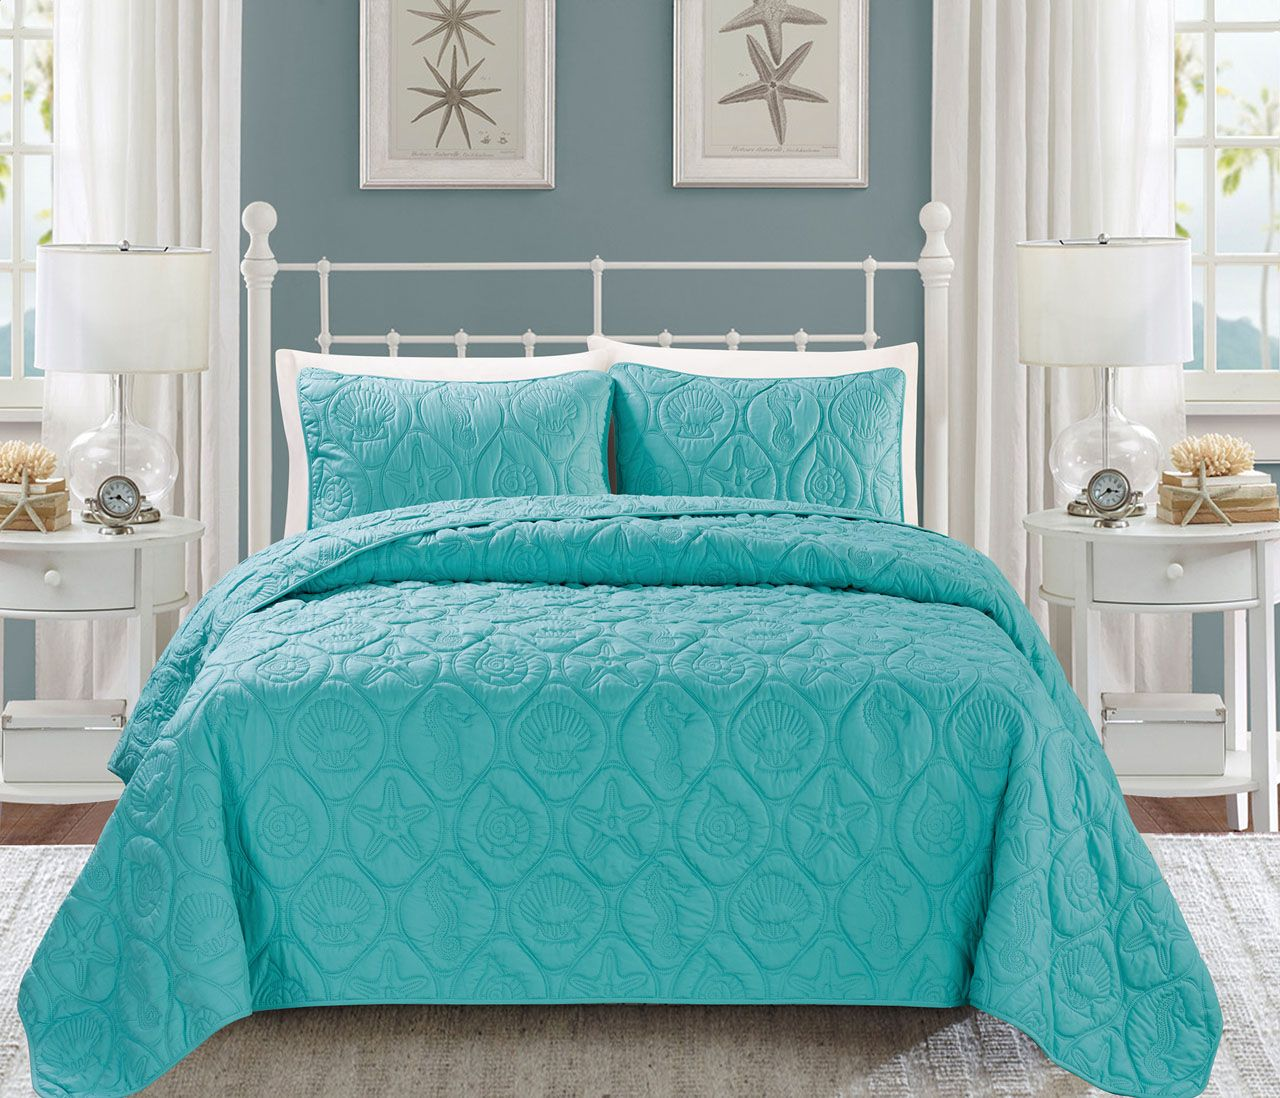 picturesque better homes and gardens quilts. This bedspread 3 pc set brings the ocean right to your home  various vivid of sea shells water horses and stars cover bedding Seashell Turquoise Reversible Bedspread Quilt Set Bedroom Bliss